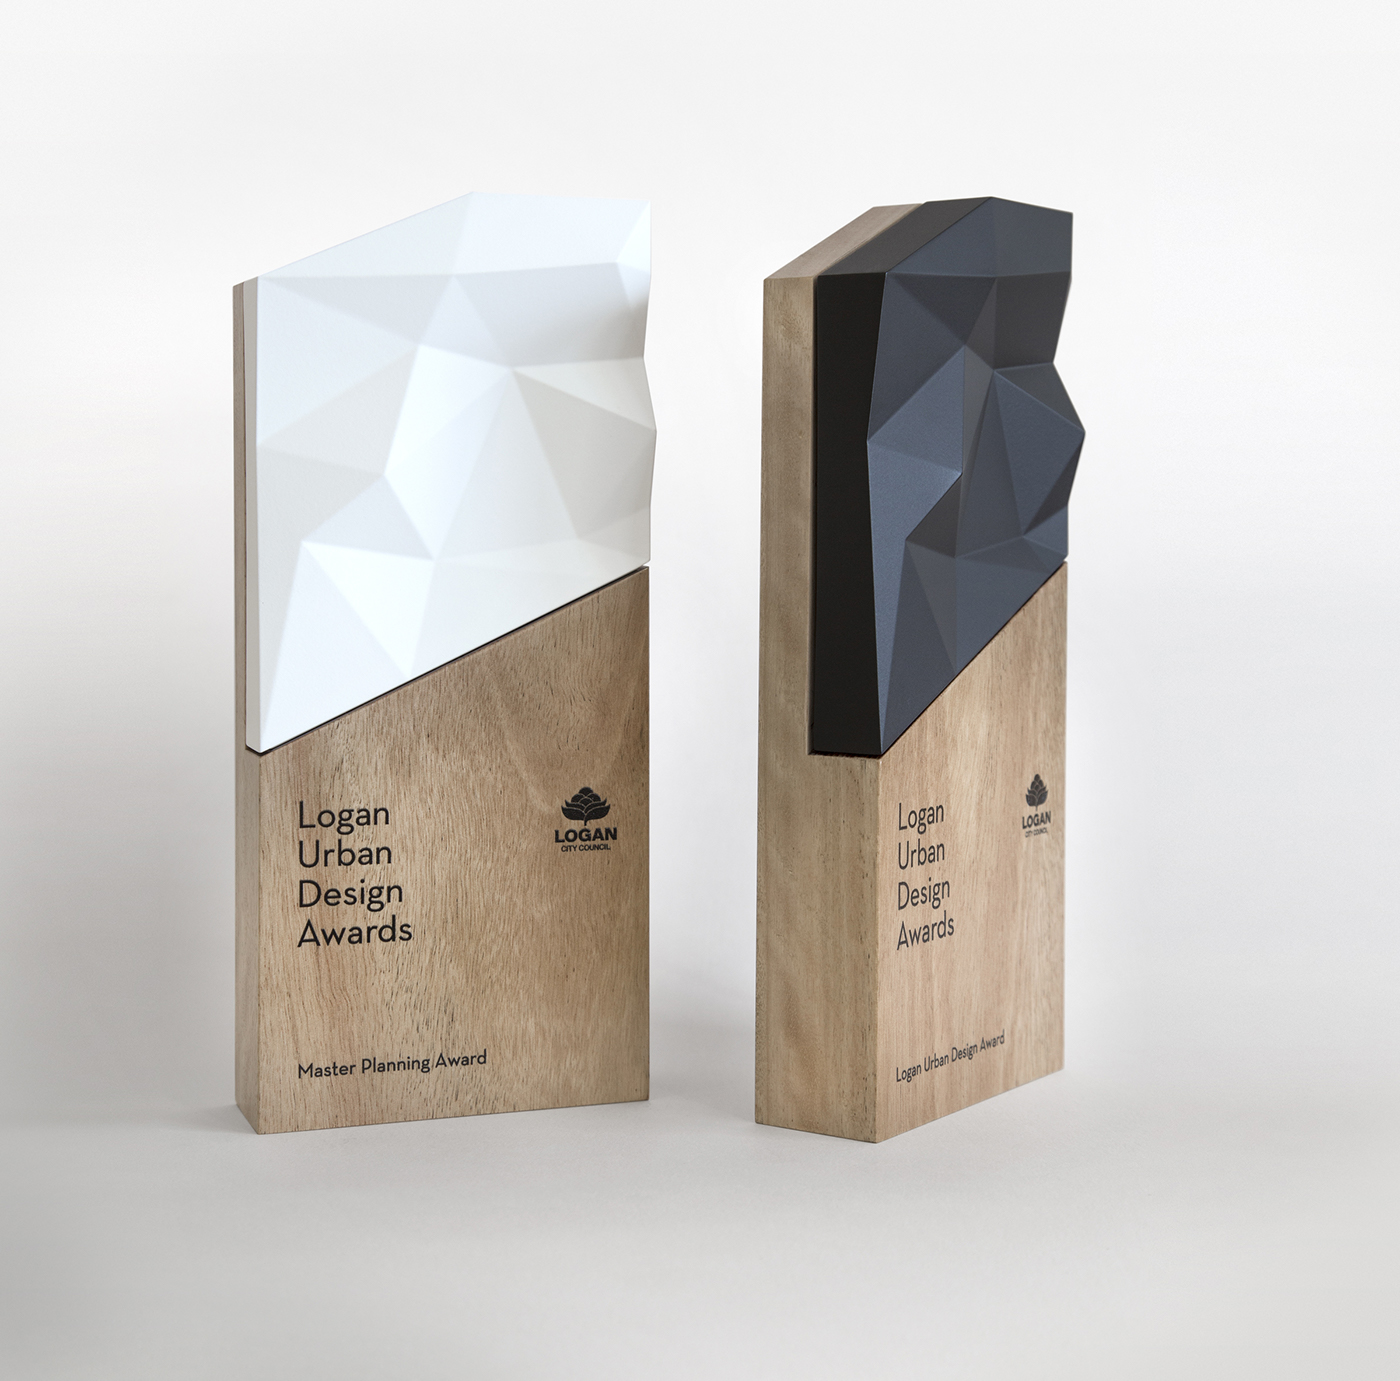 A Trophy Is An Unusual Commission For Graphic Design Studio But We Loved Working On This Beautiful Project The Logan Urban Awards